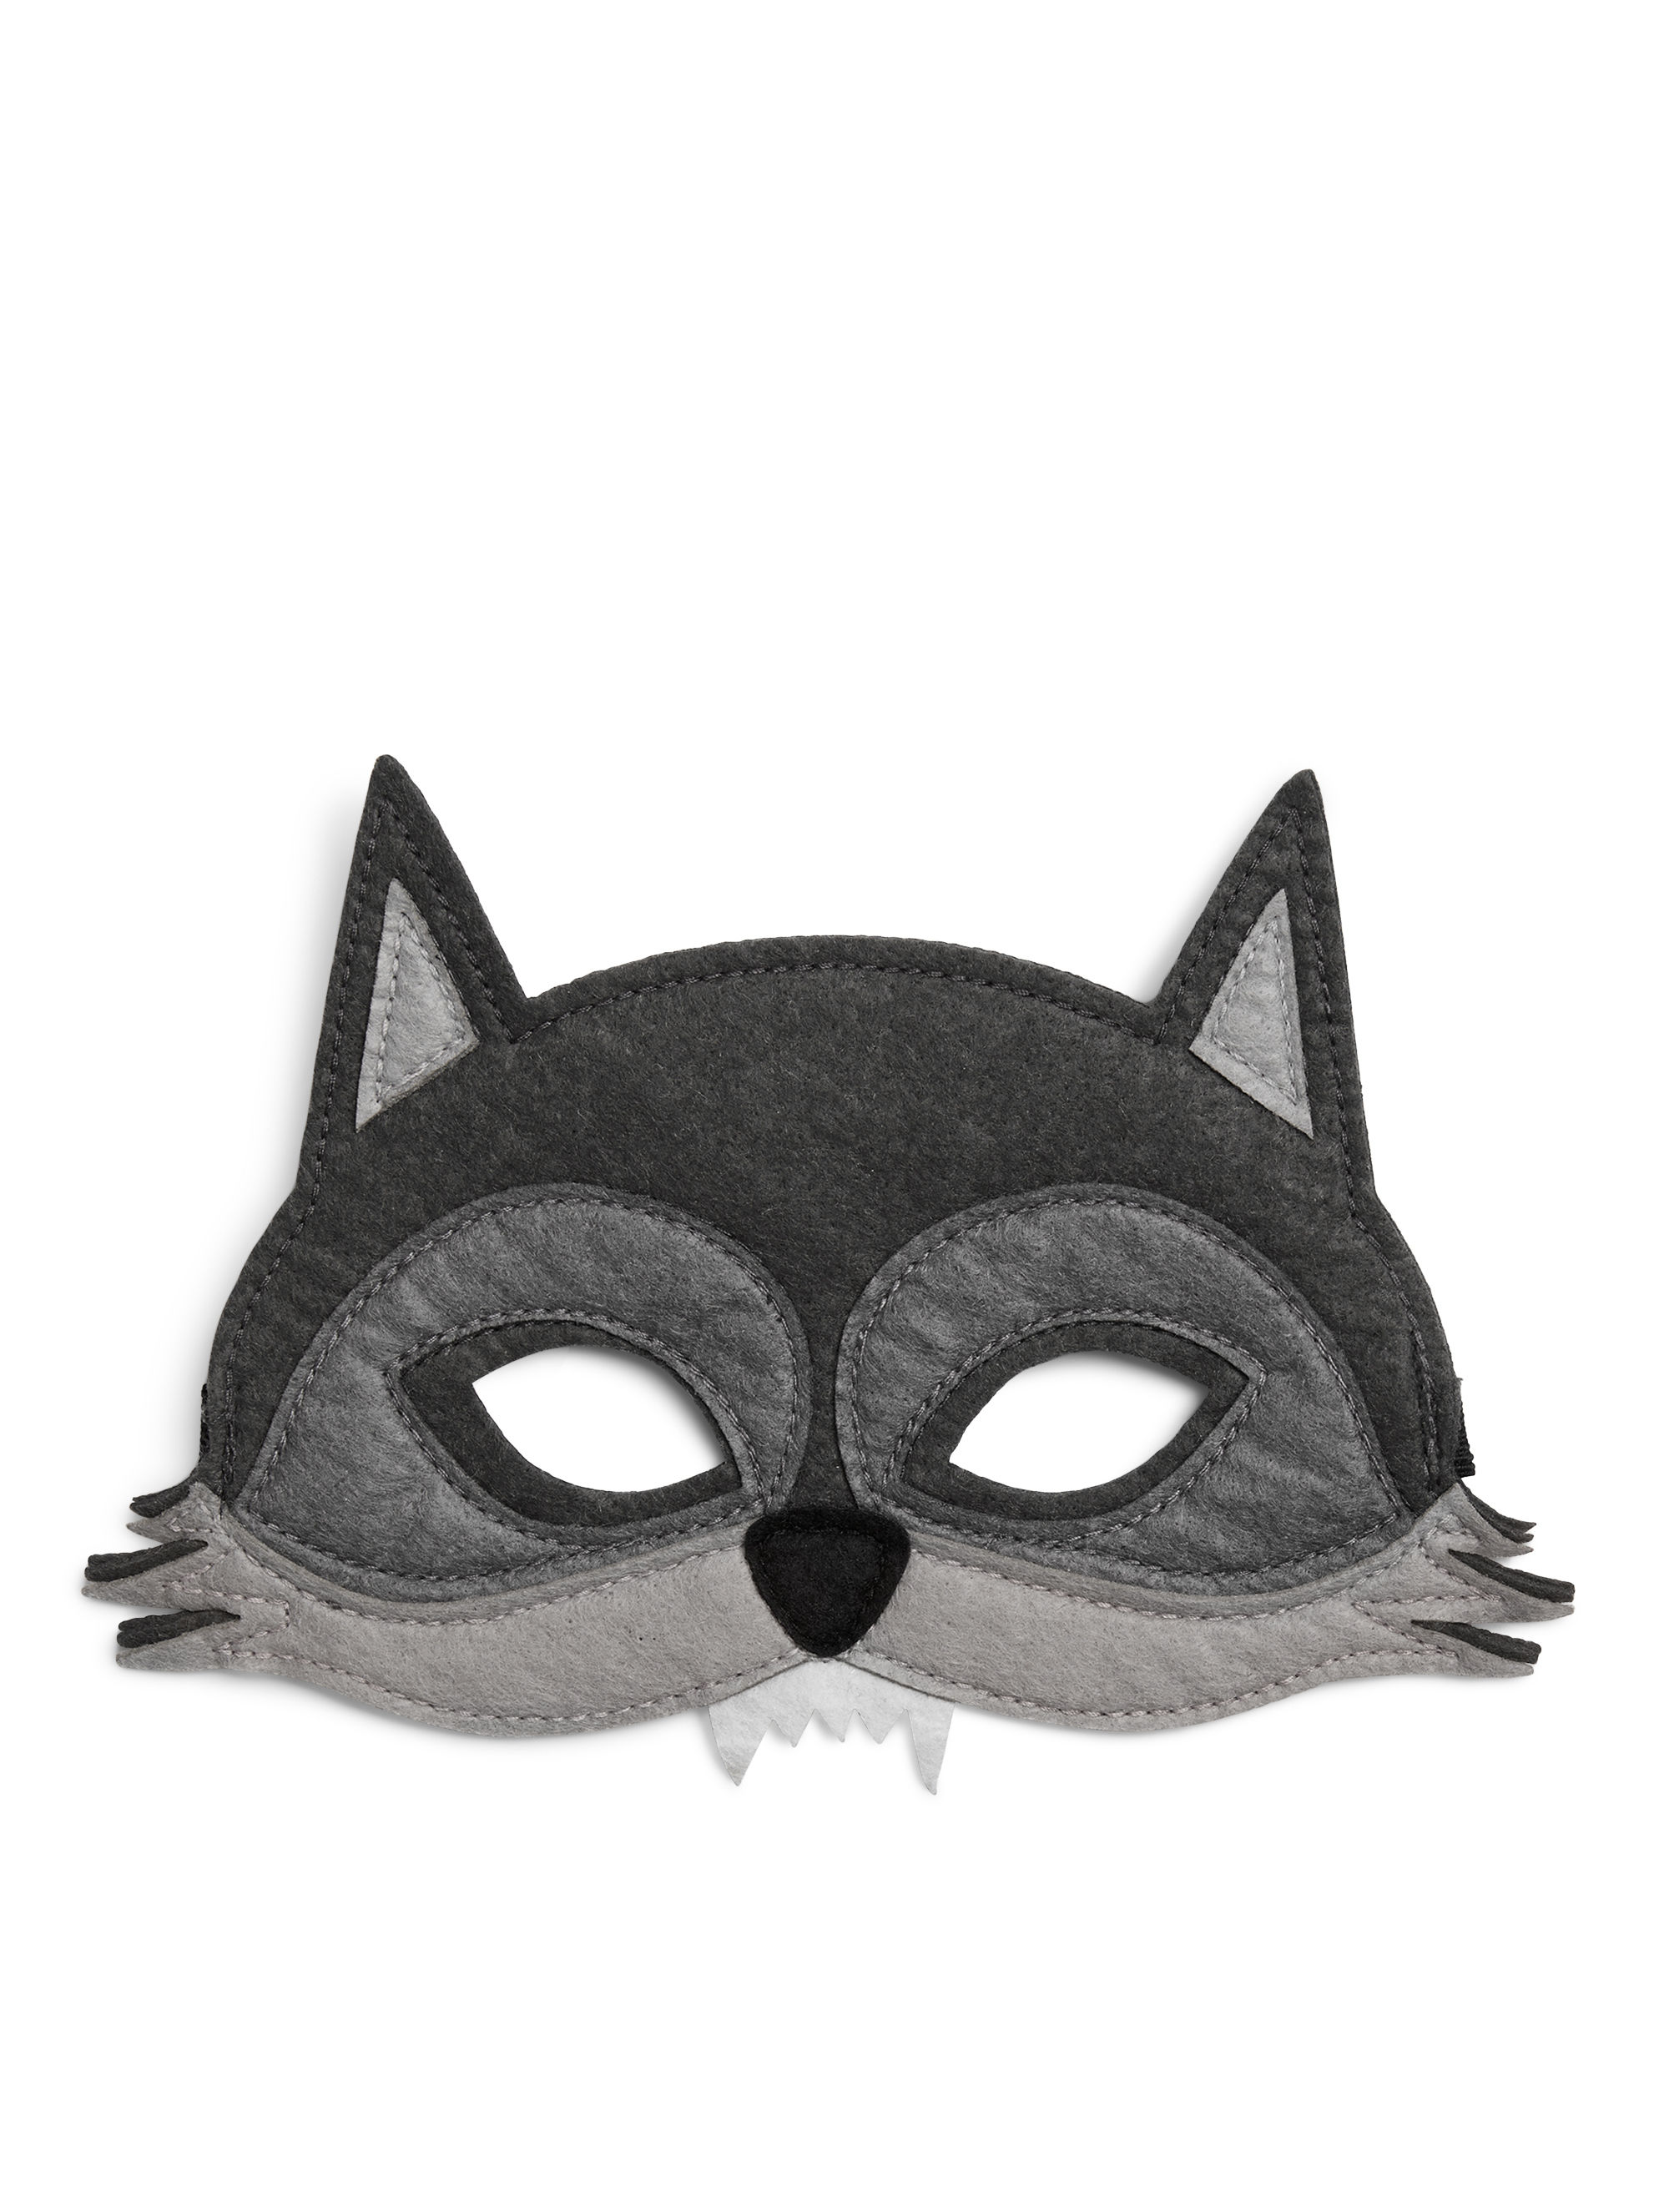 Fabric Swatch image of Arket animal mask in grey